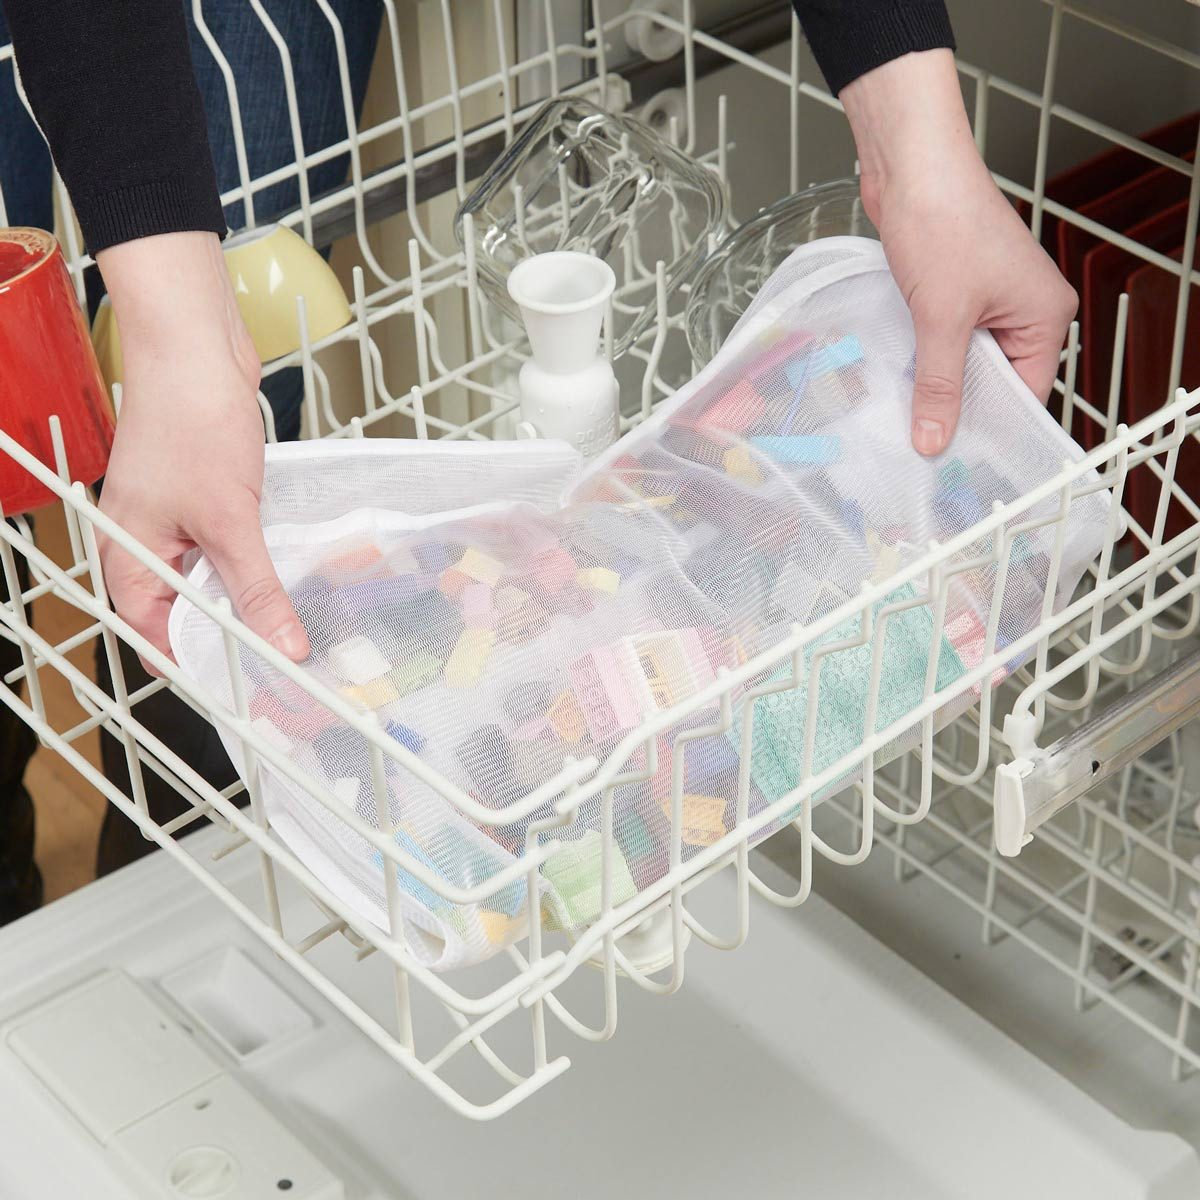 HH disinfect legos in dishwasher